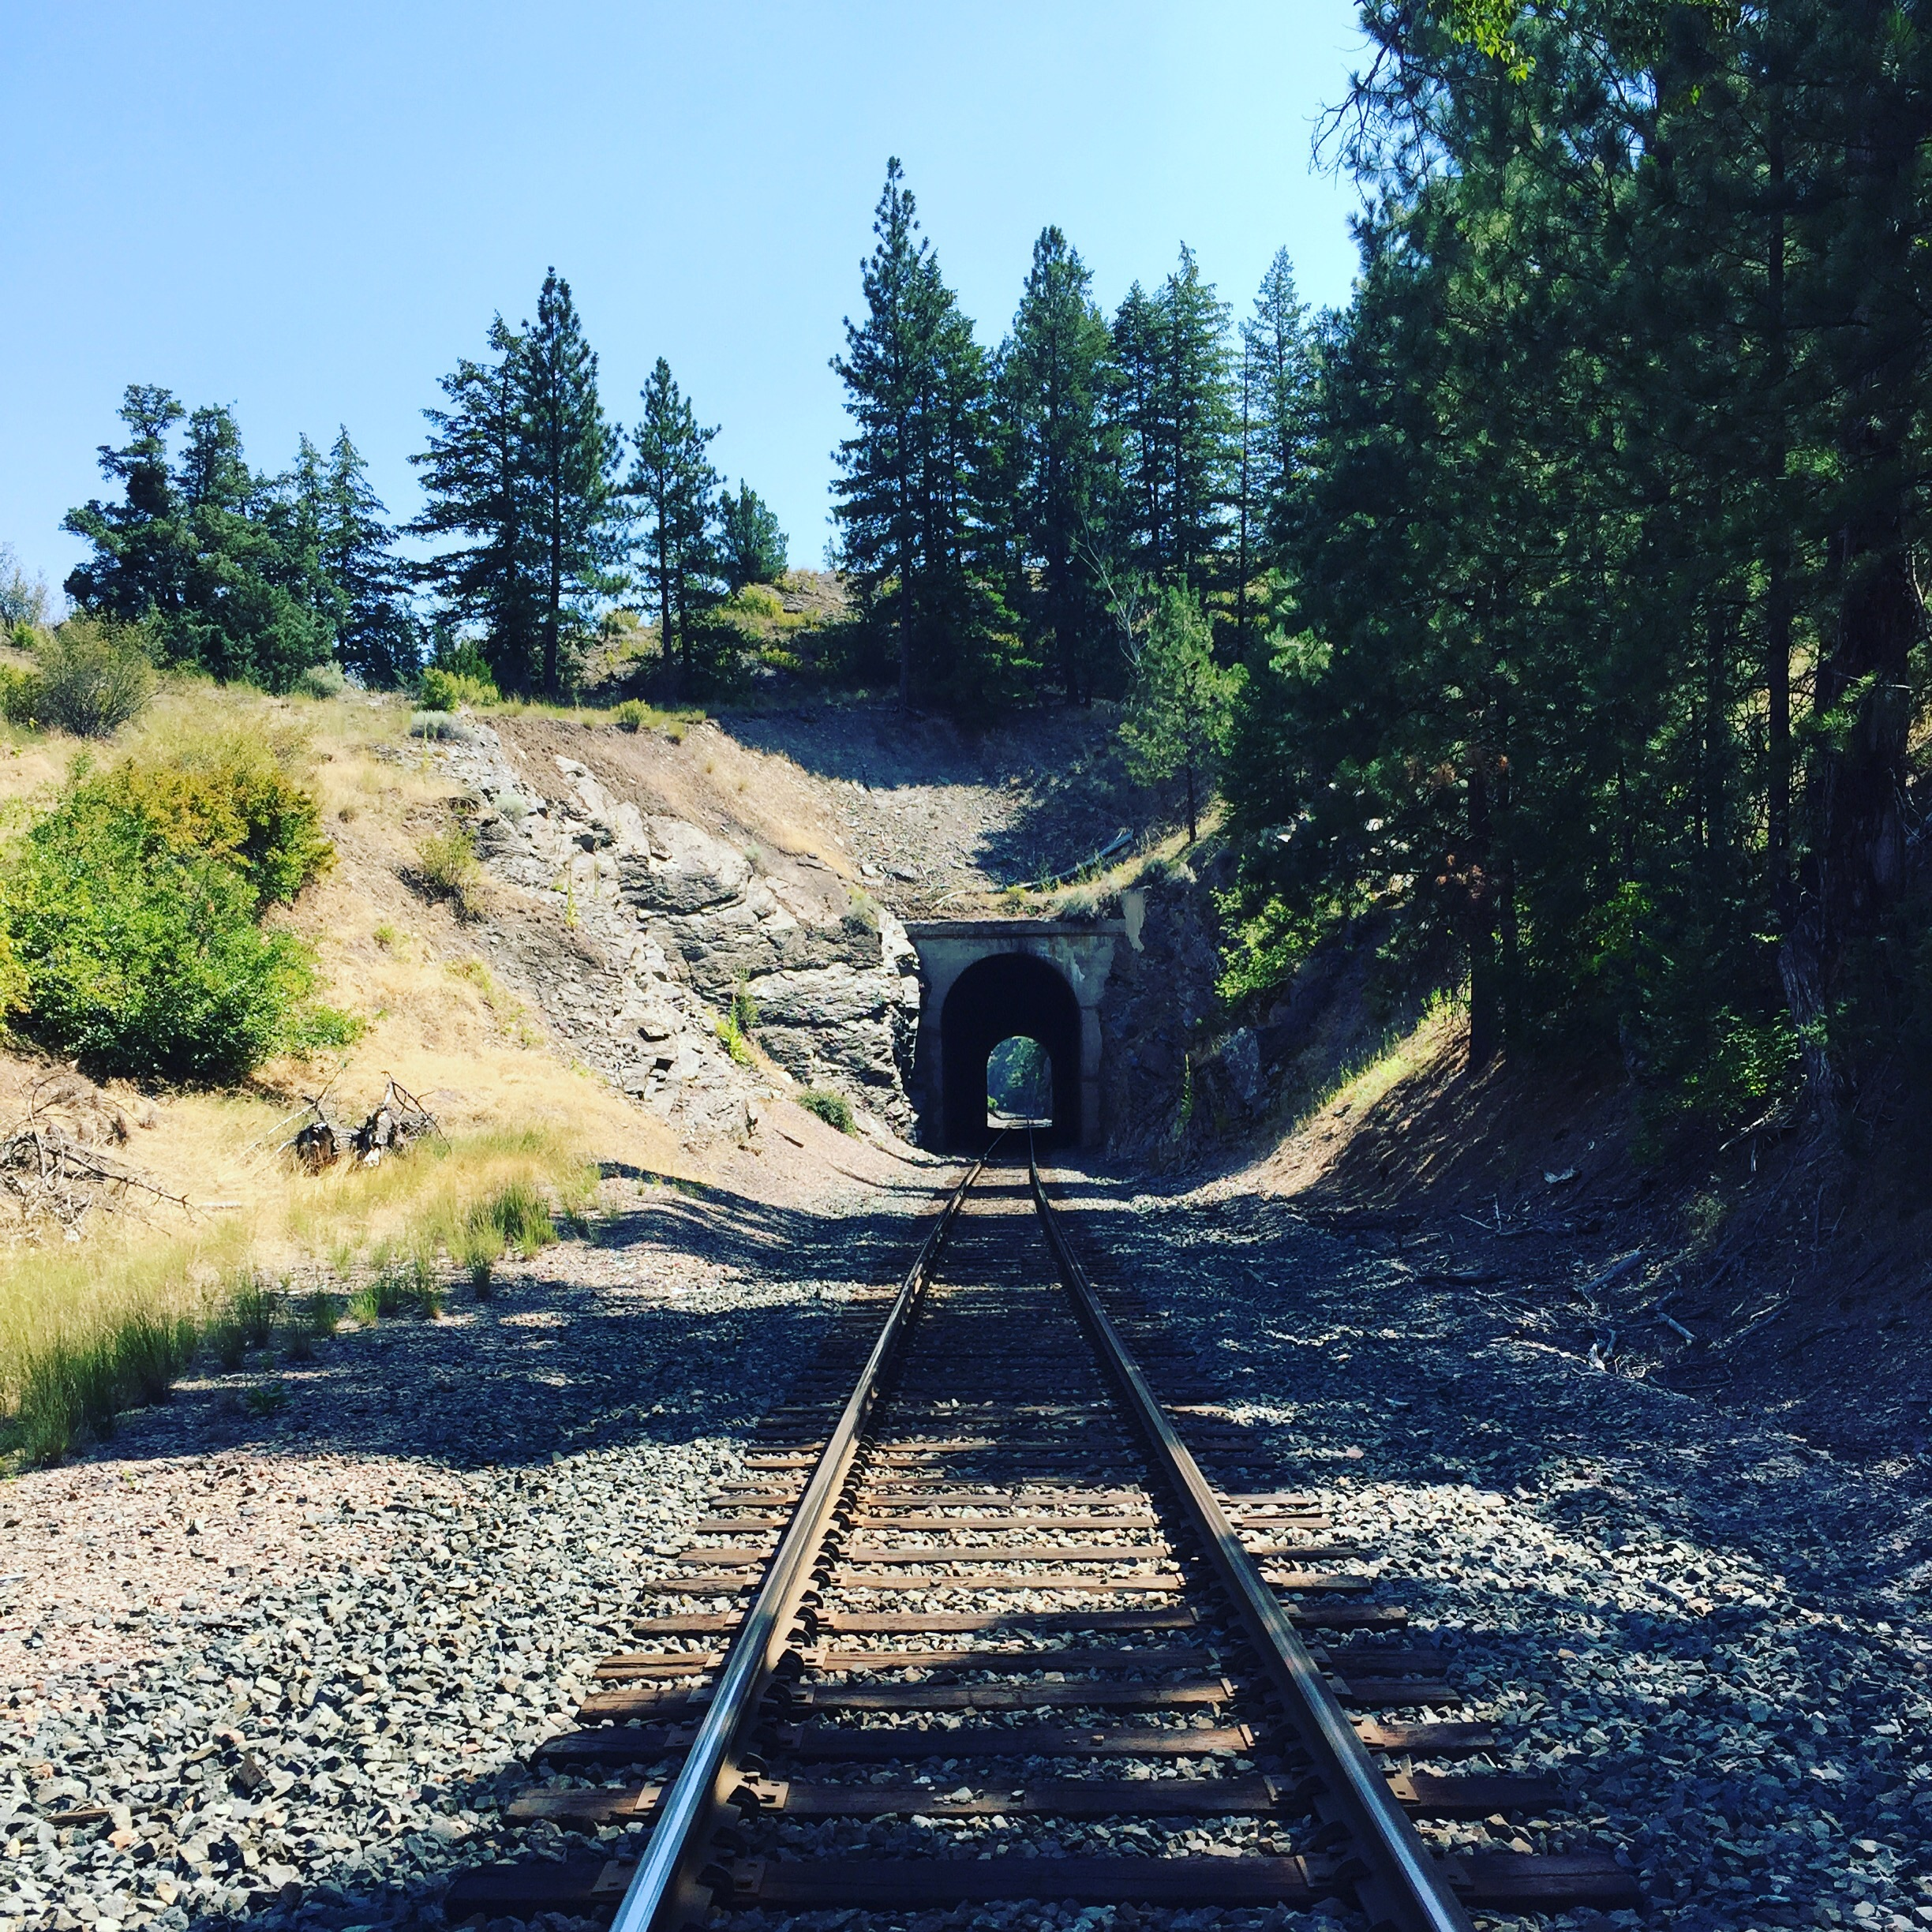 If you listen long enough, you can hear the tales of Cotton in the wind here on the rails above the Clark fork River in Montana.